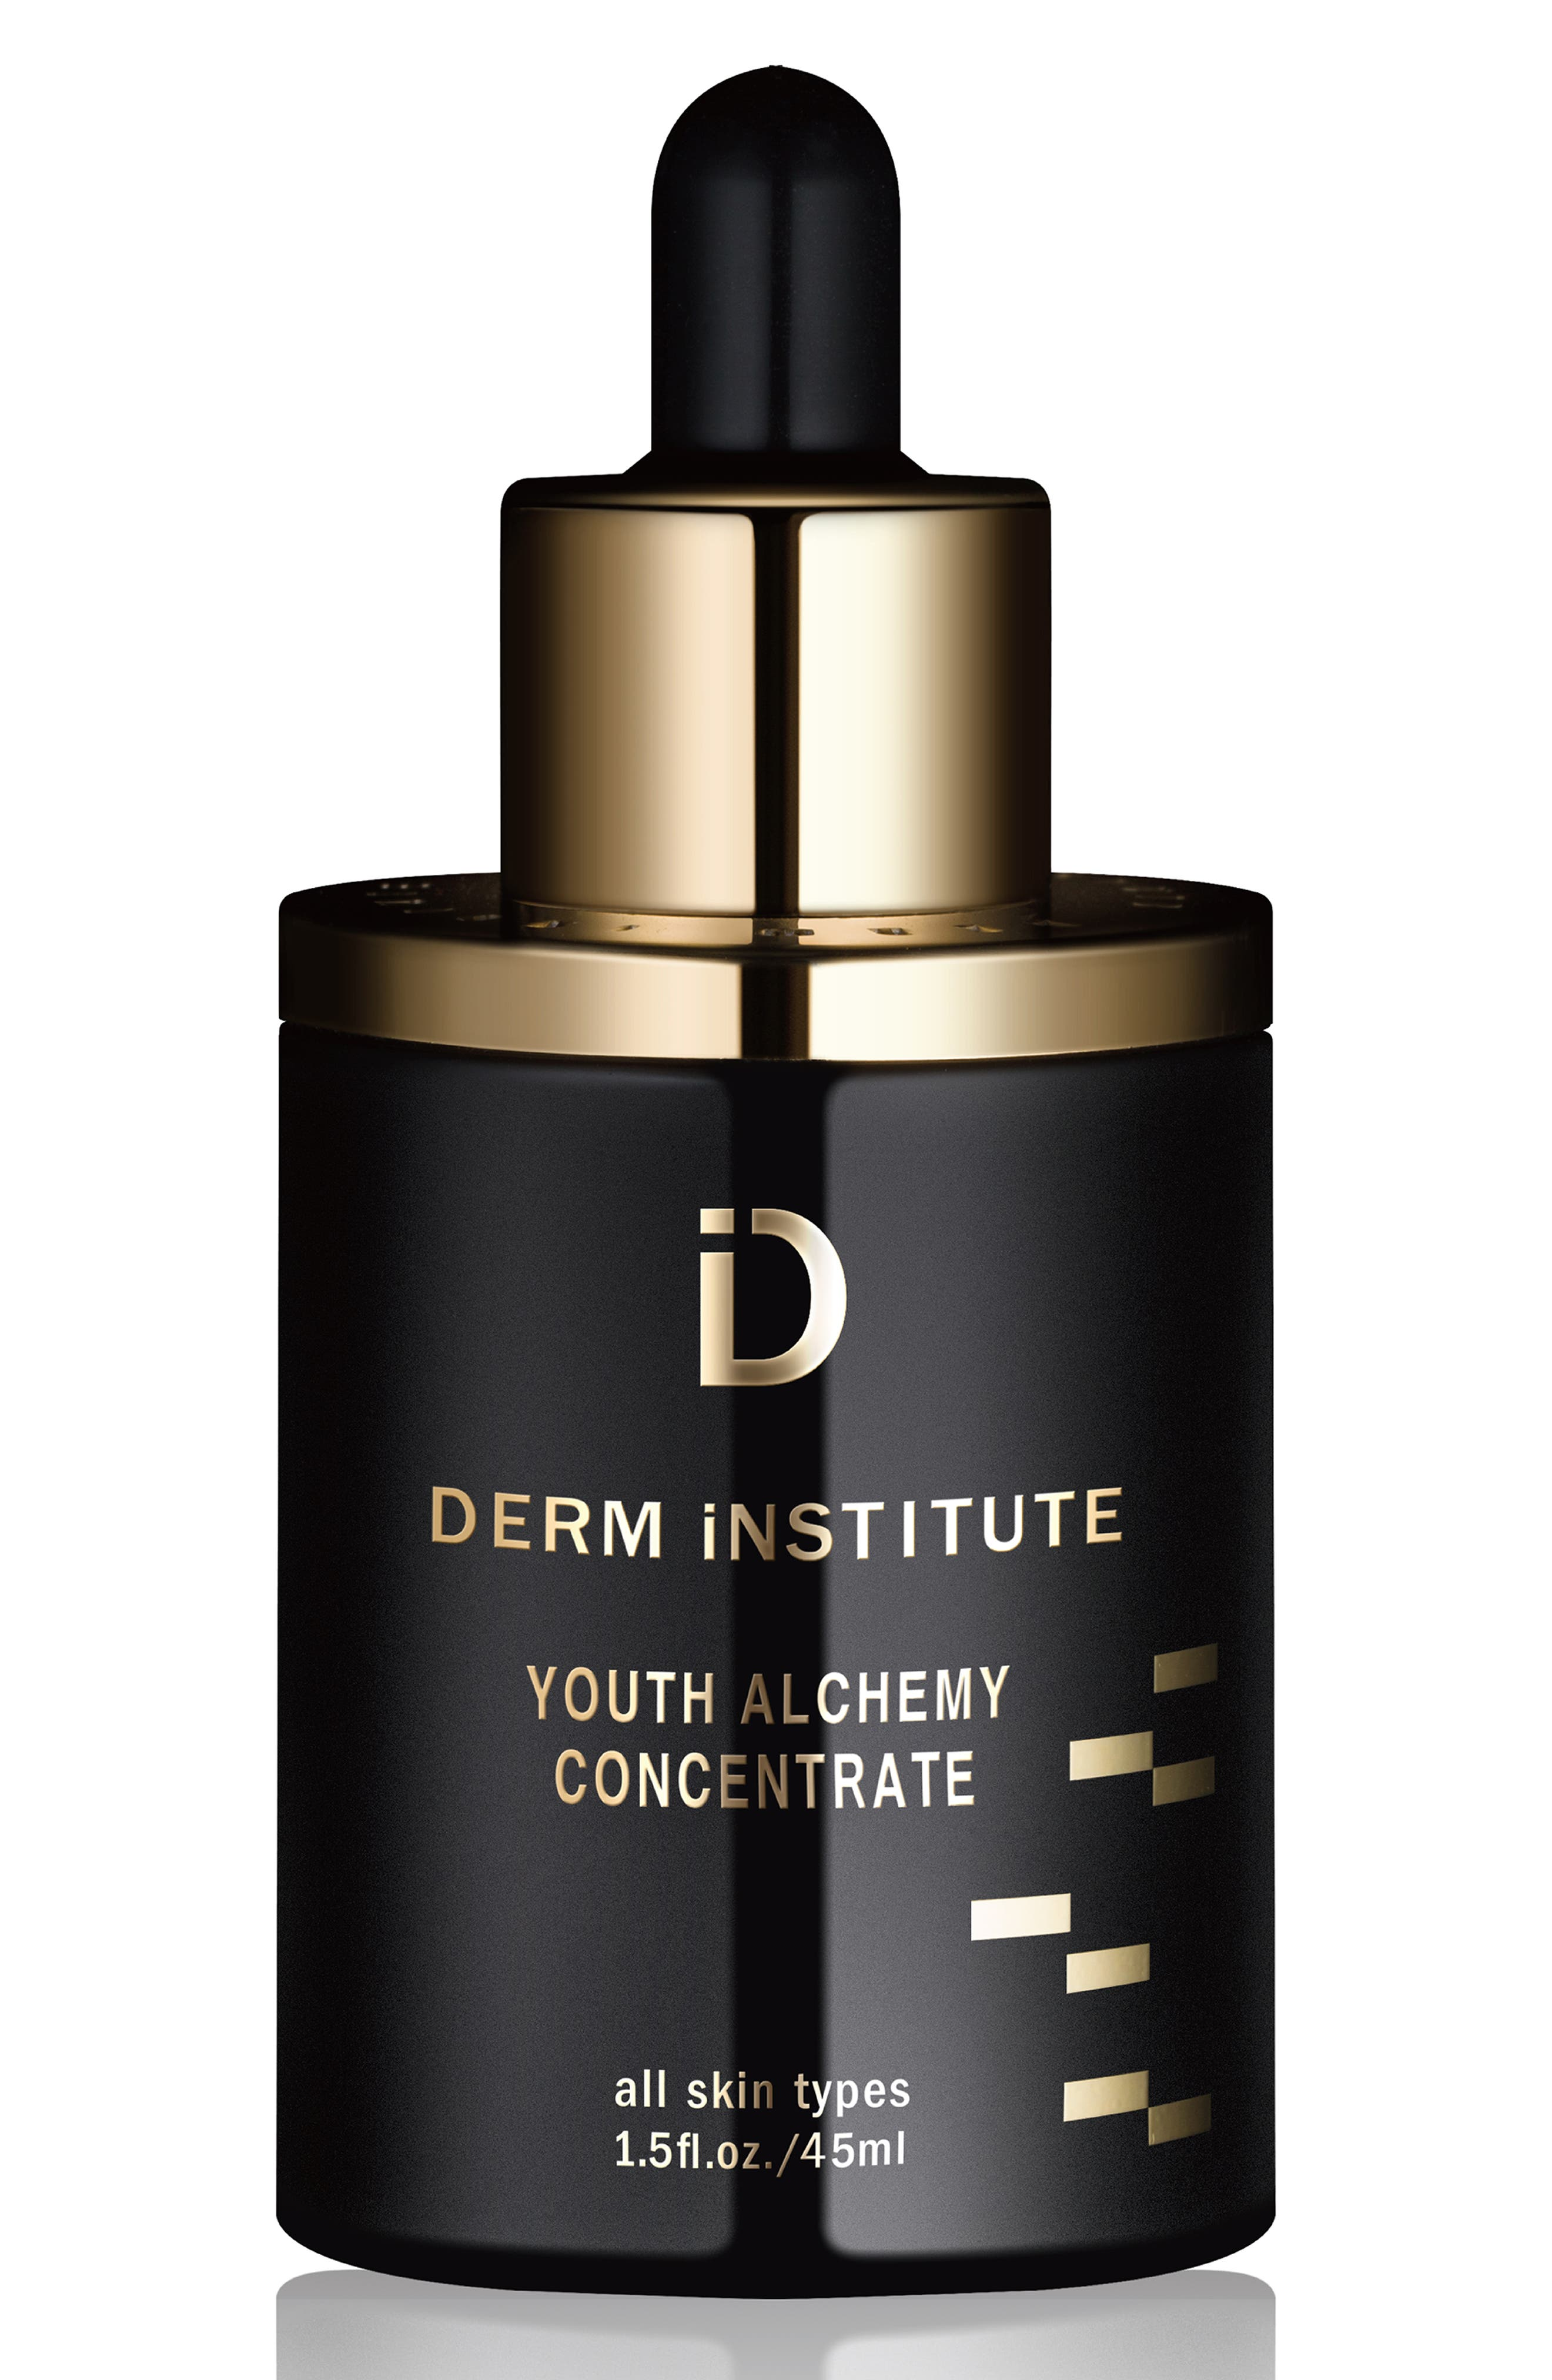 Youth Alchemy Concentrate